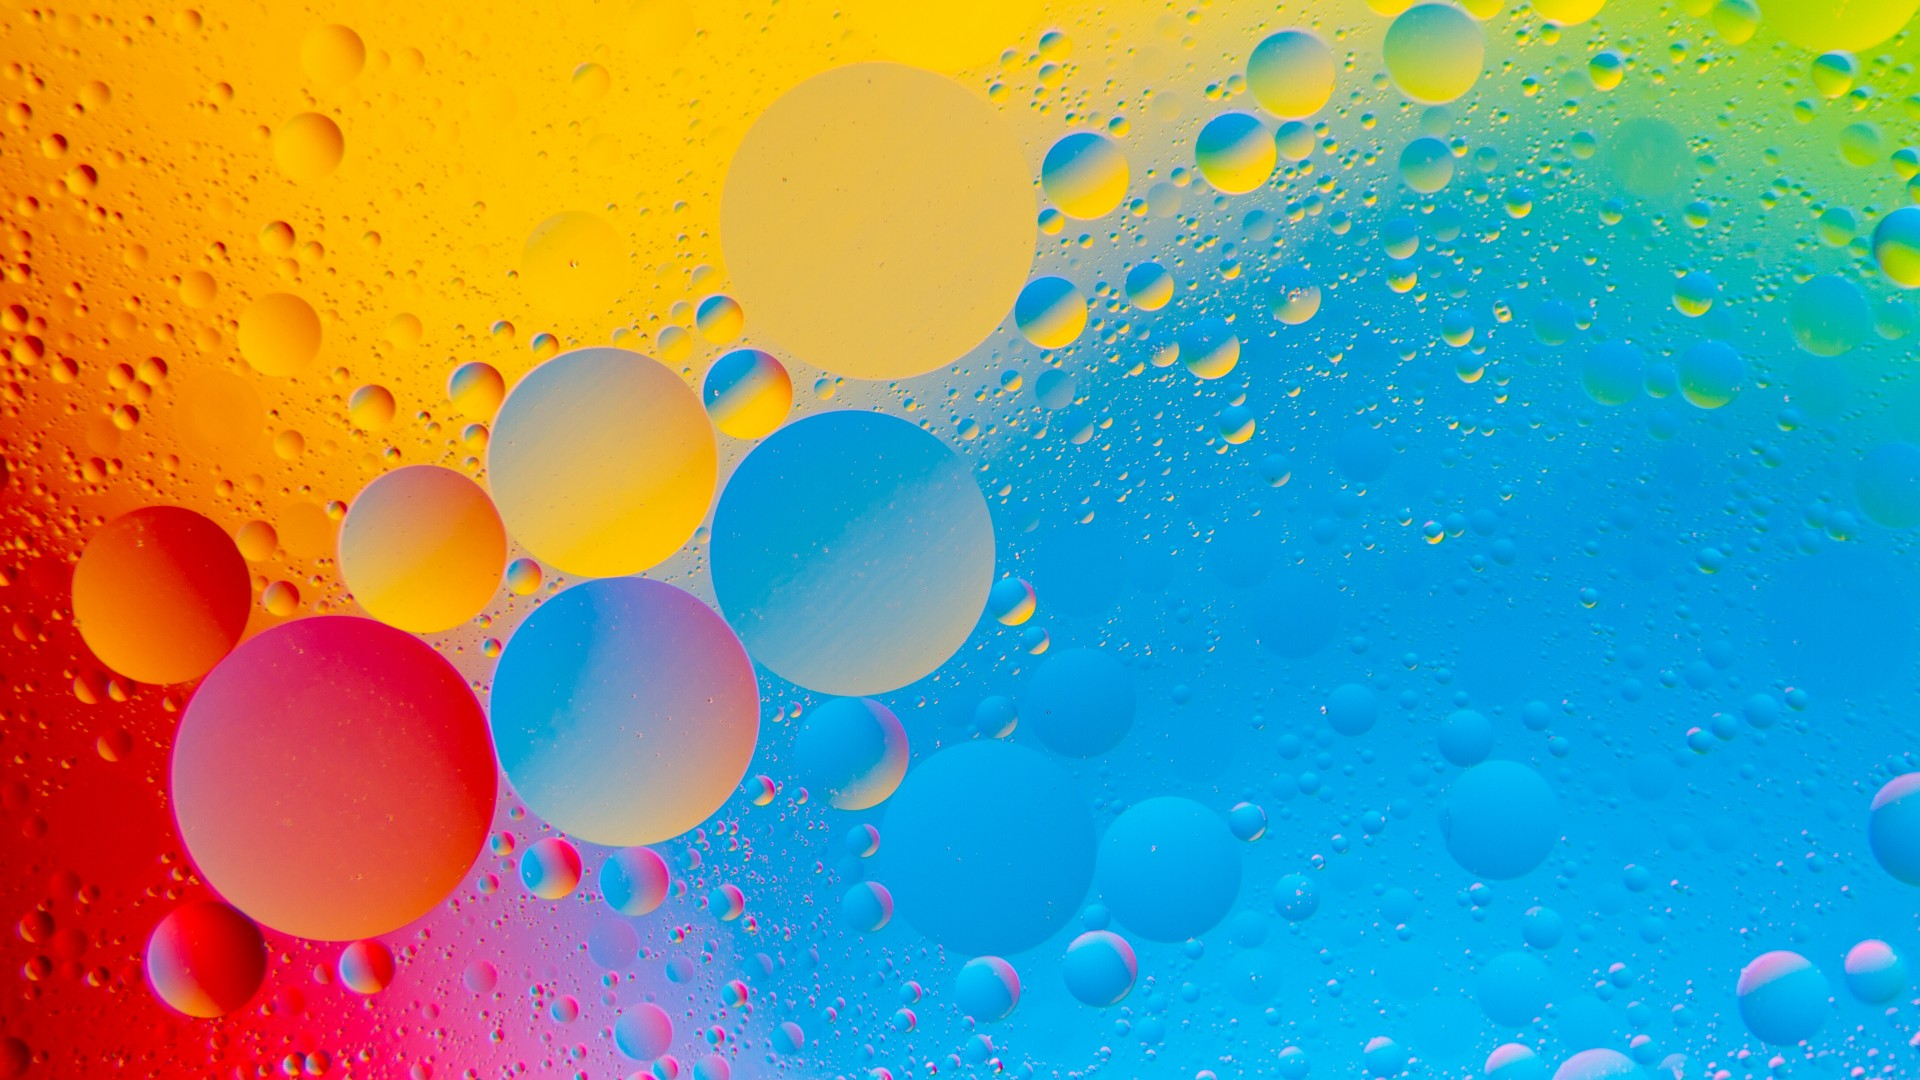 colourful bubbles 4k hd abstract wallpaper iphone 7 plus / iphone 8